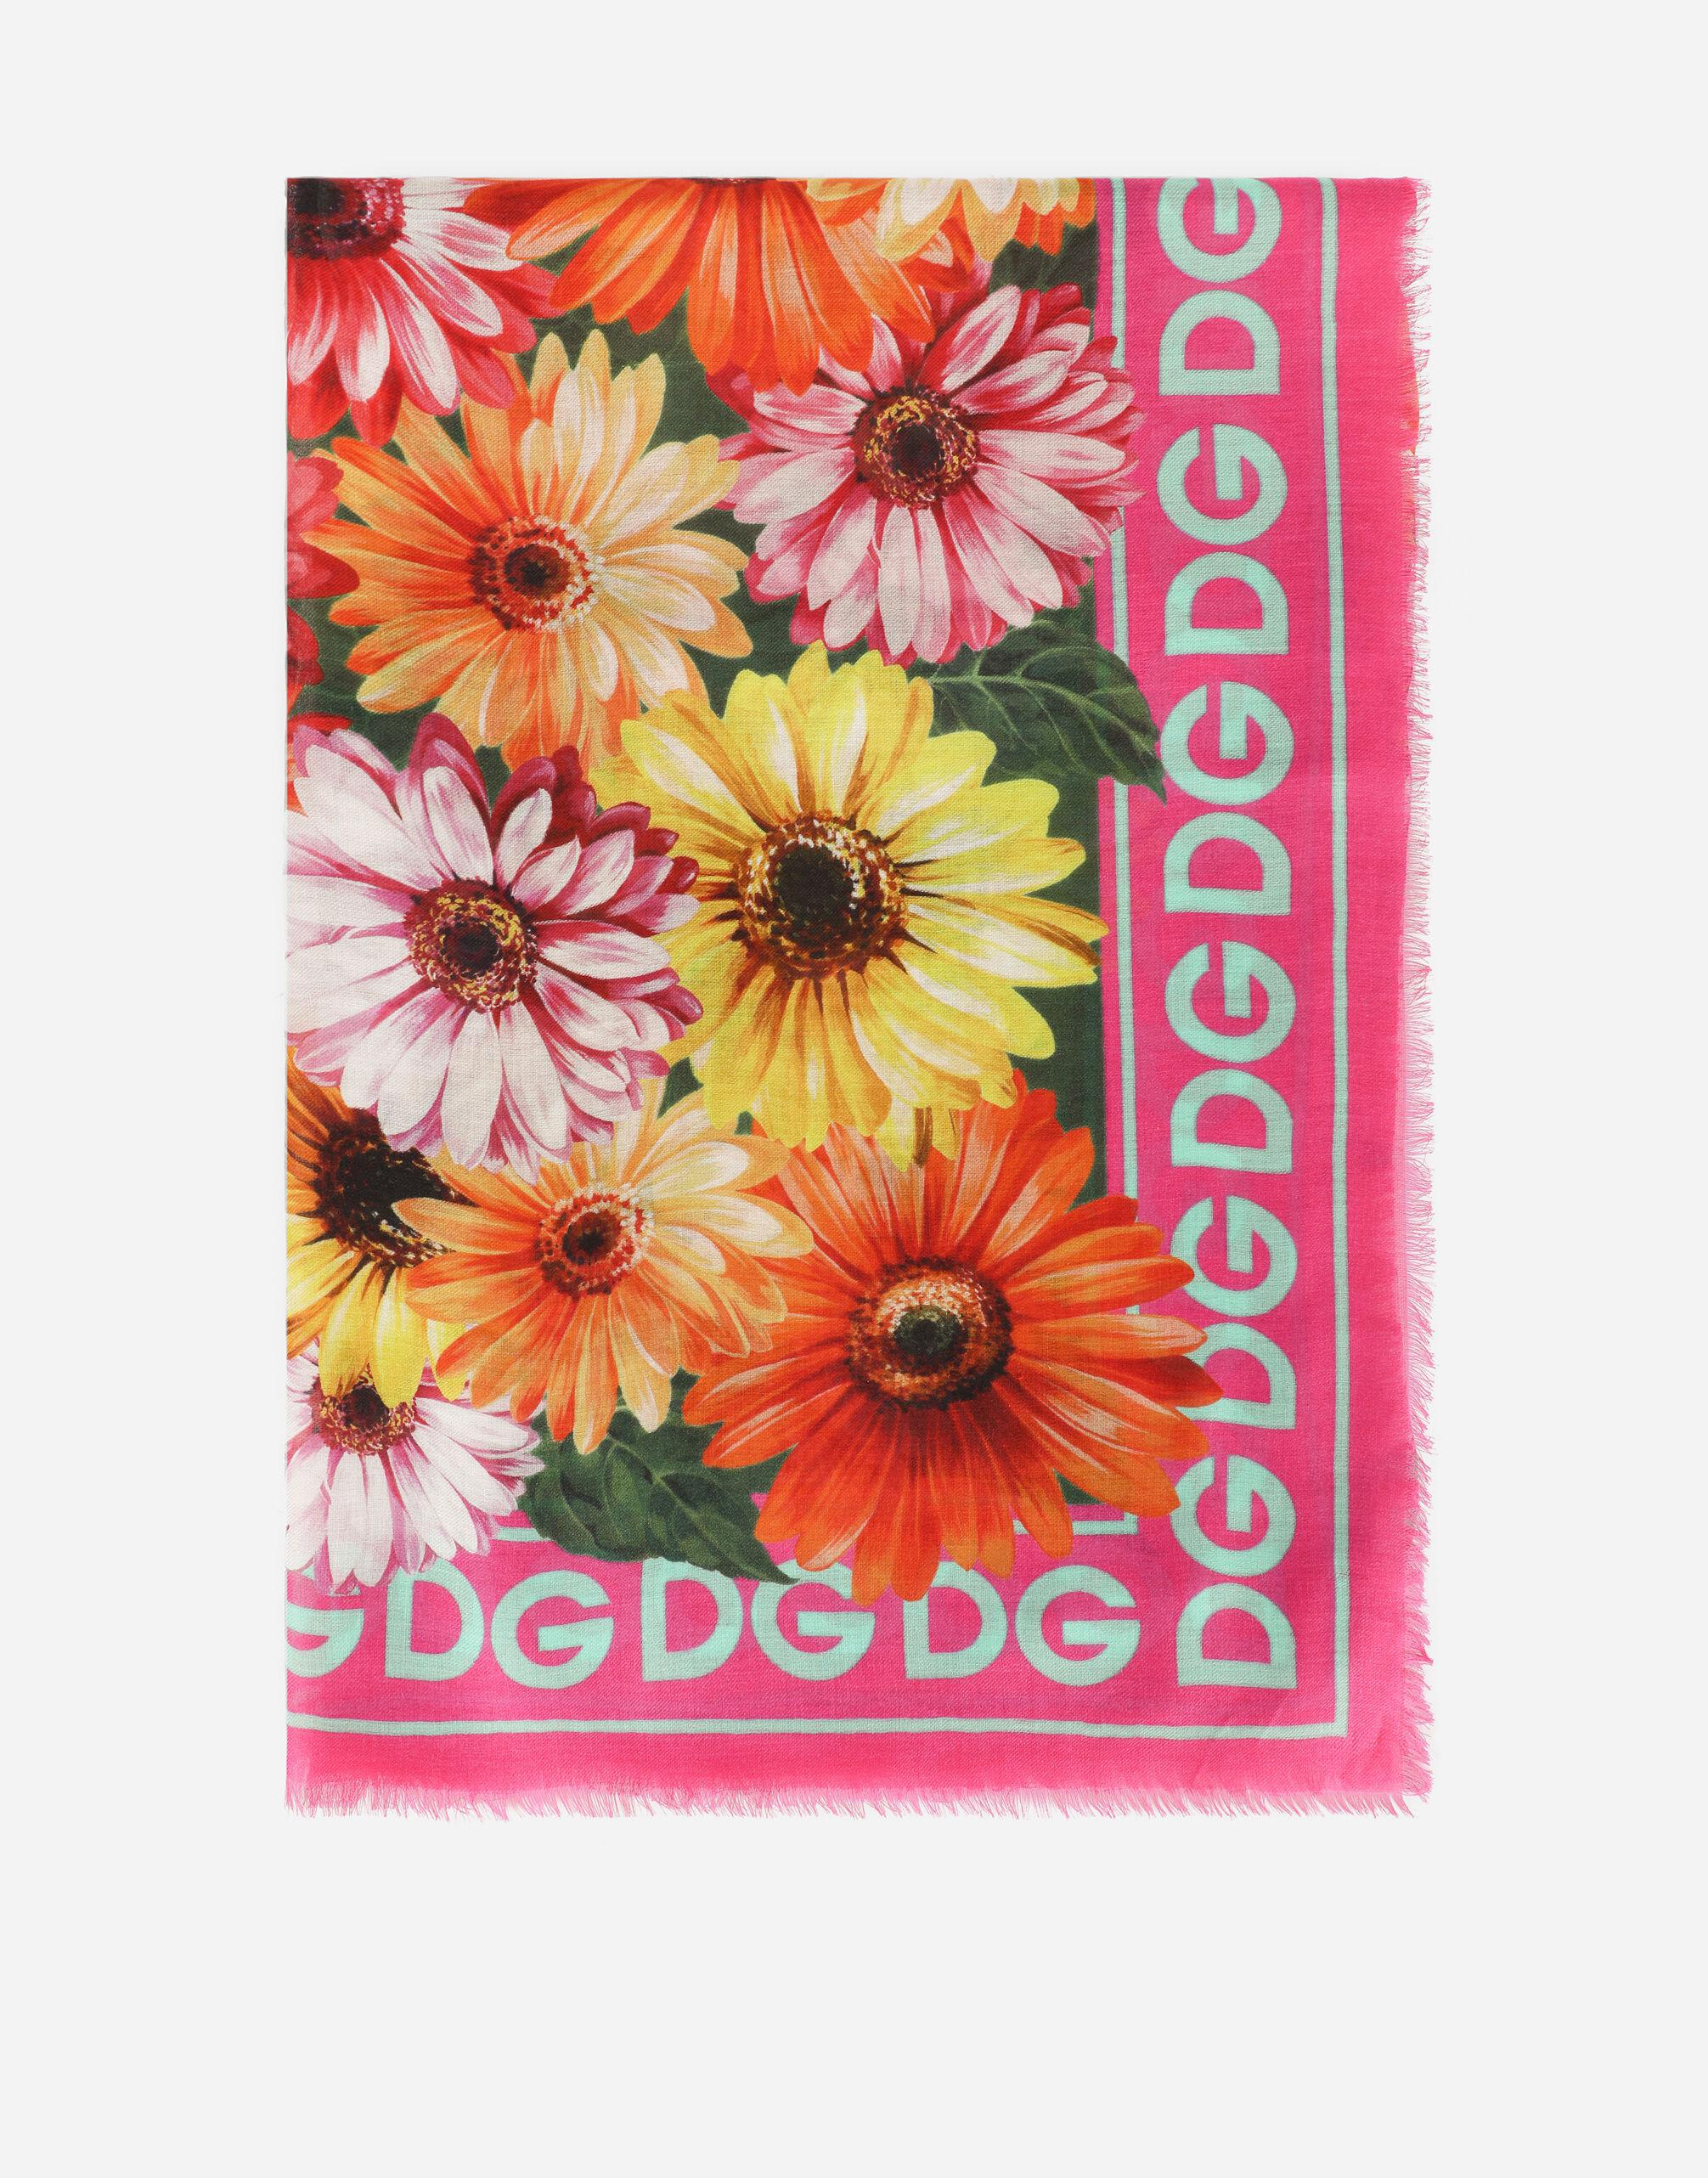 Modal and cashmere scarf with gerbera-daisy print (140 x 140)